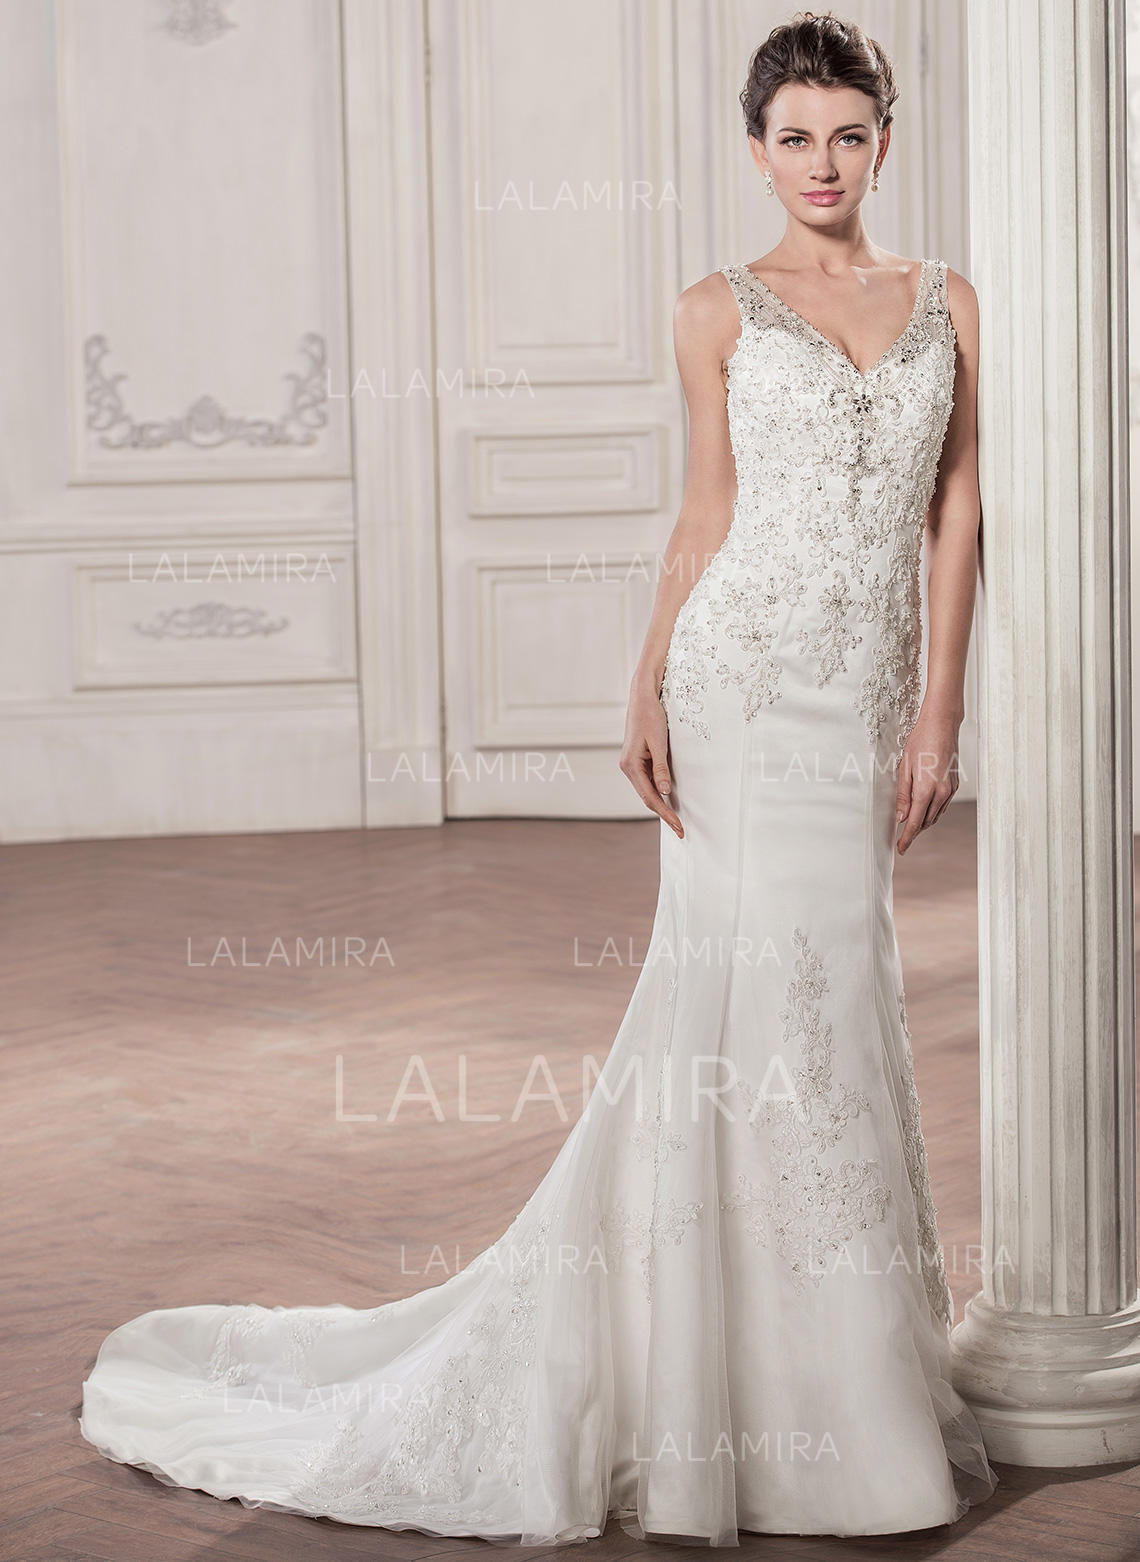 Sweetheart Trumpet Mermaid Wedding Dresses Tulle Beading Appliques Lace  Sequins Sleeveless Court Train (002058795. Loading zoom d4d6646c0